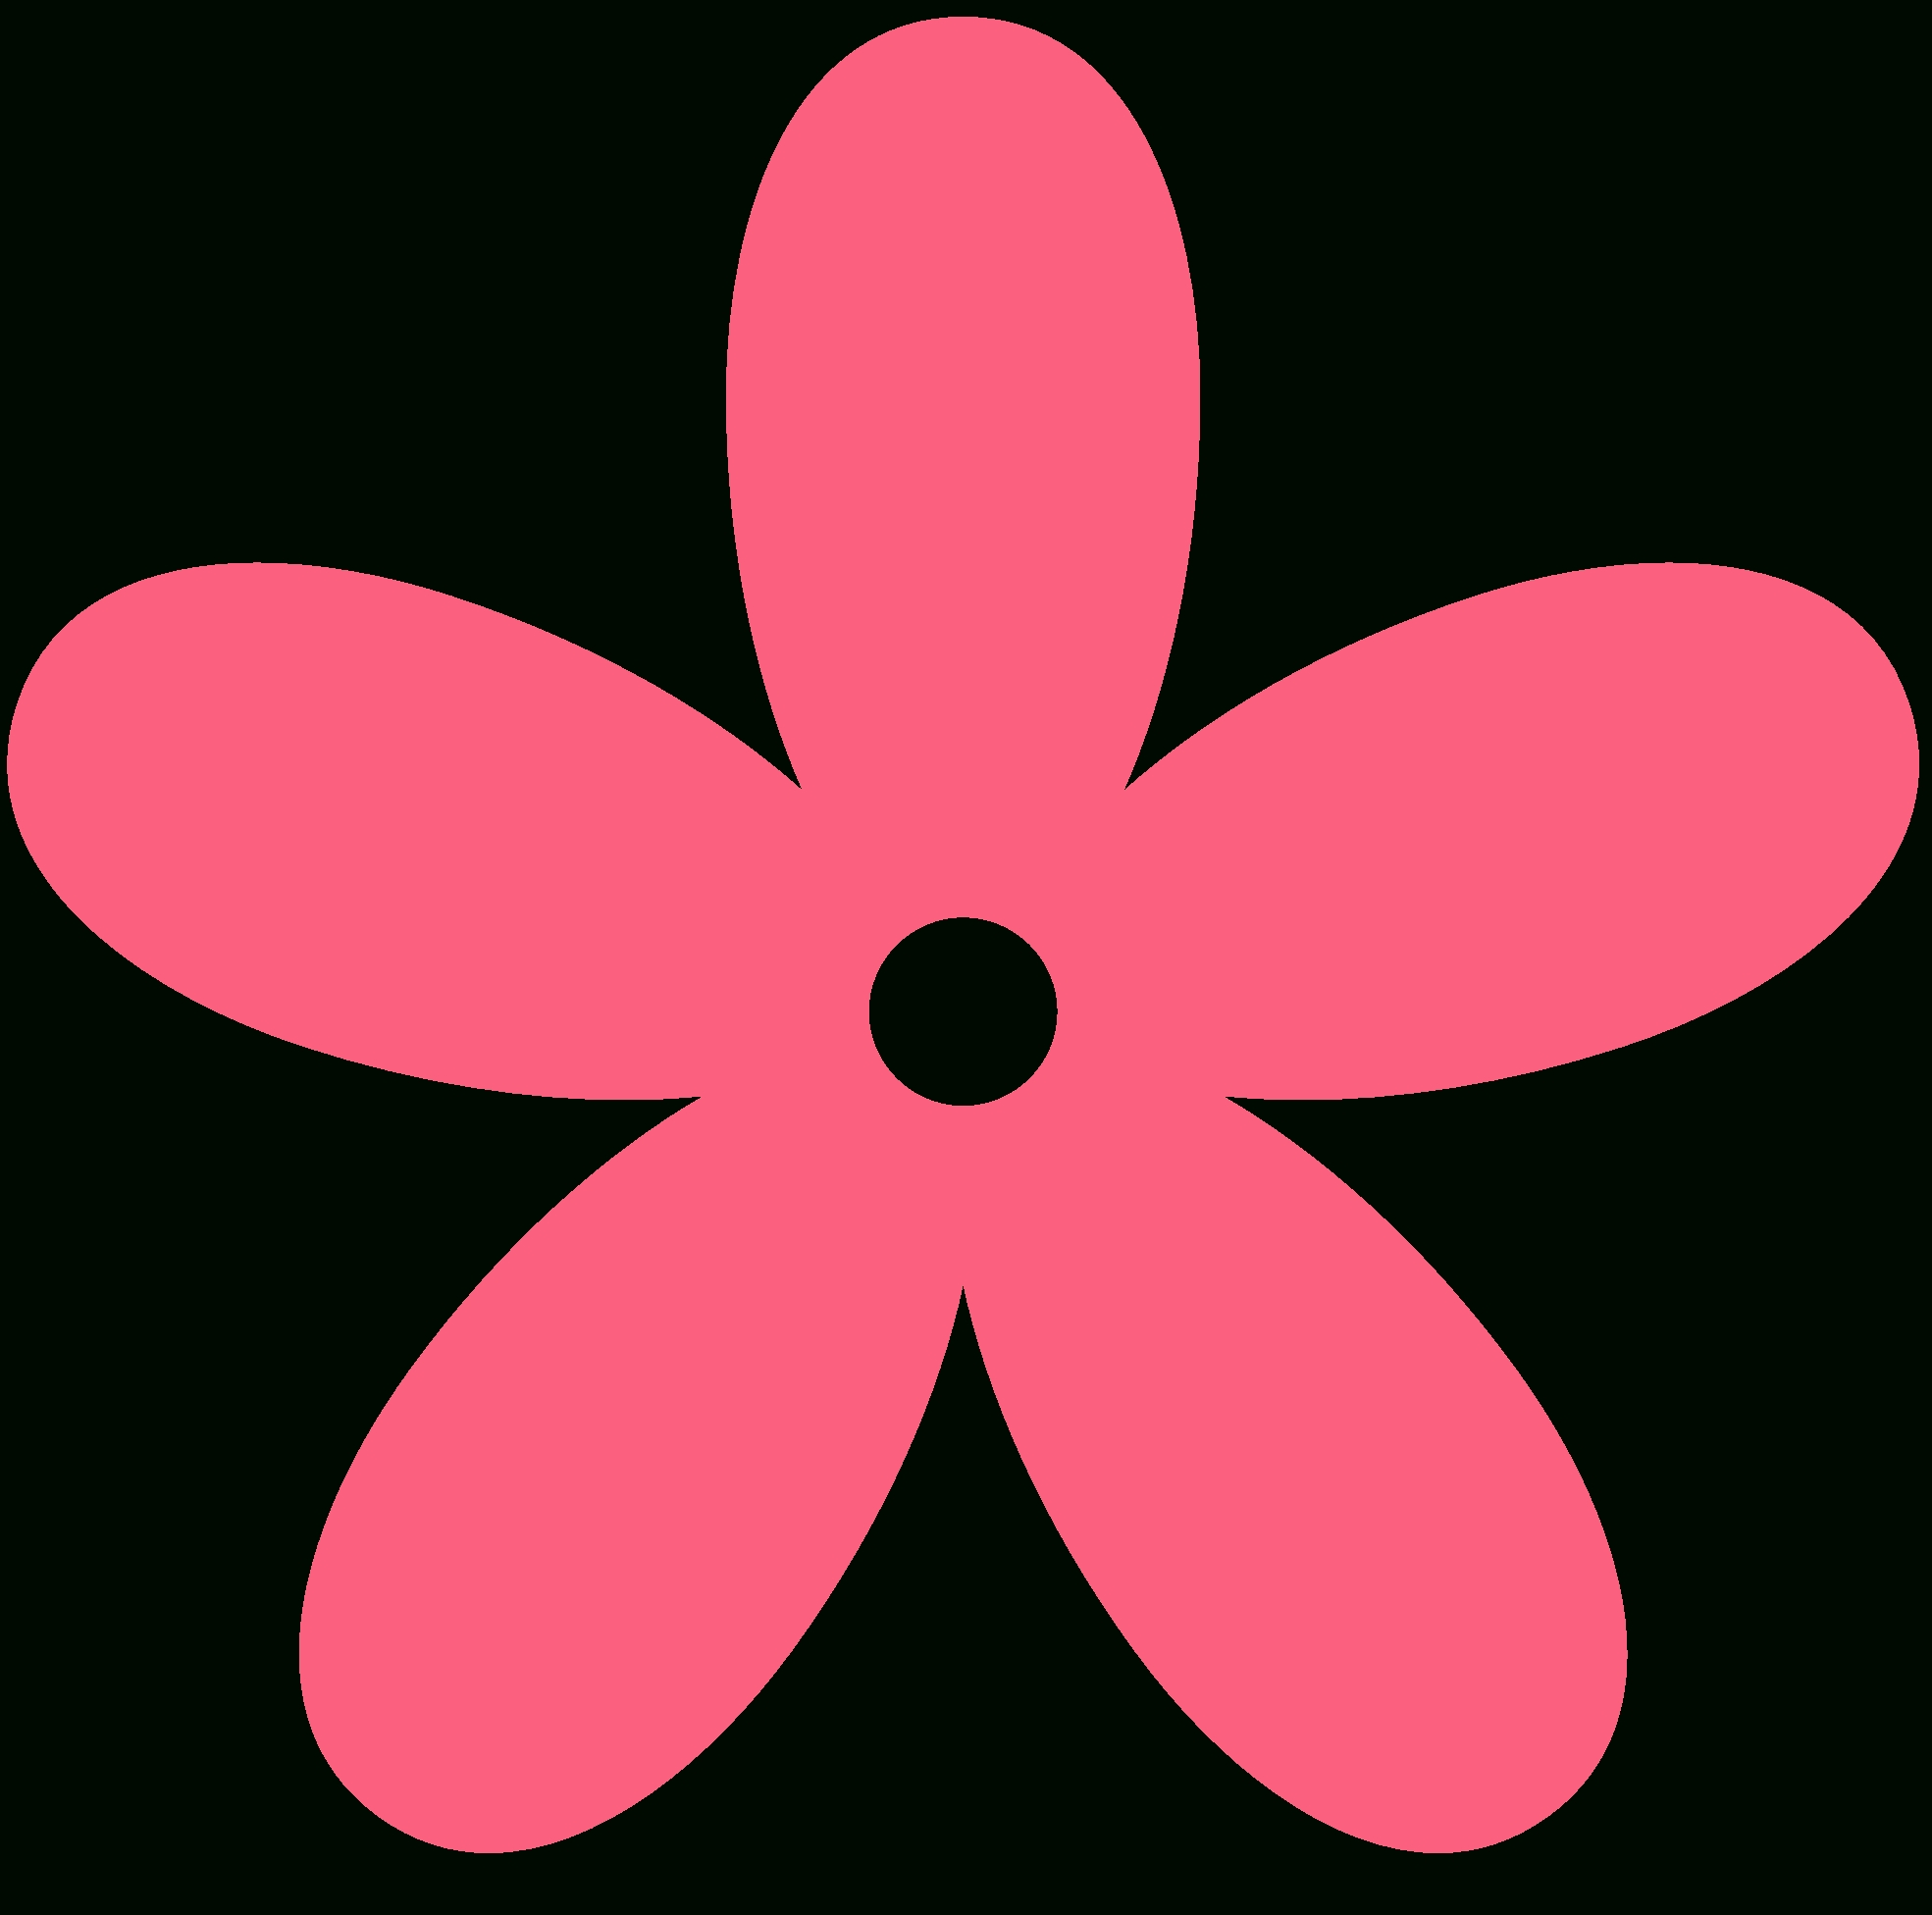 1969x1952 Simple Flower Clip Art